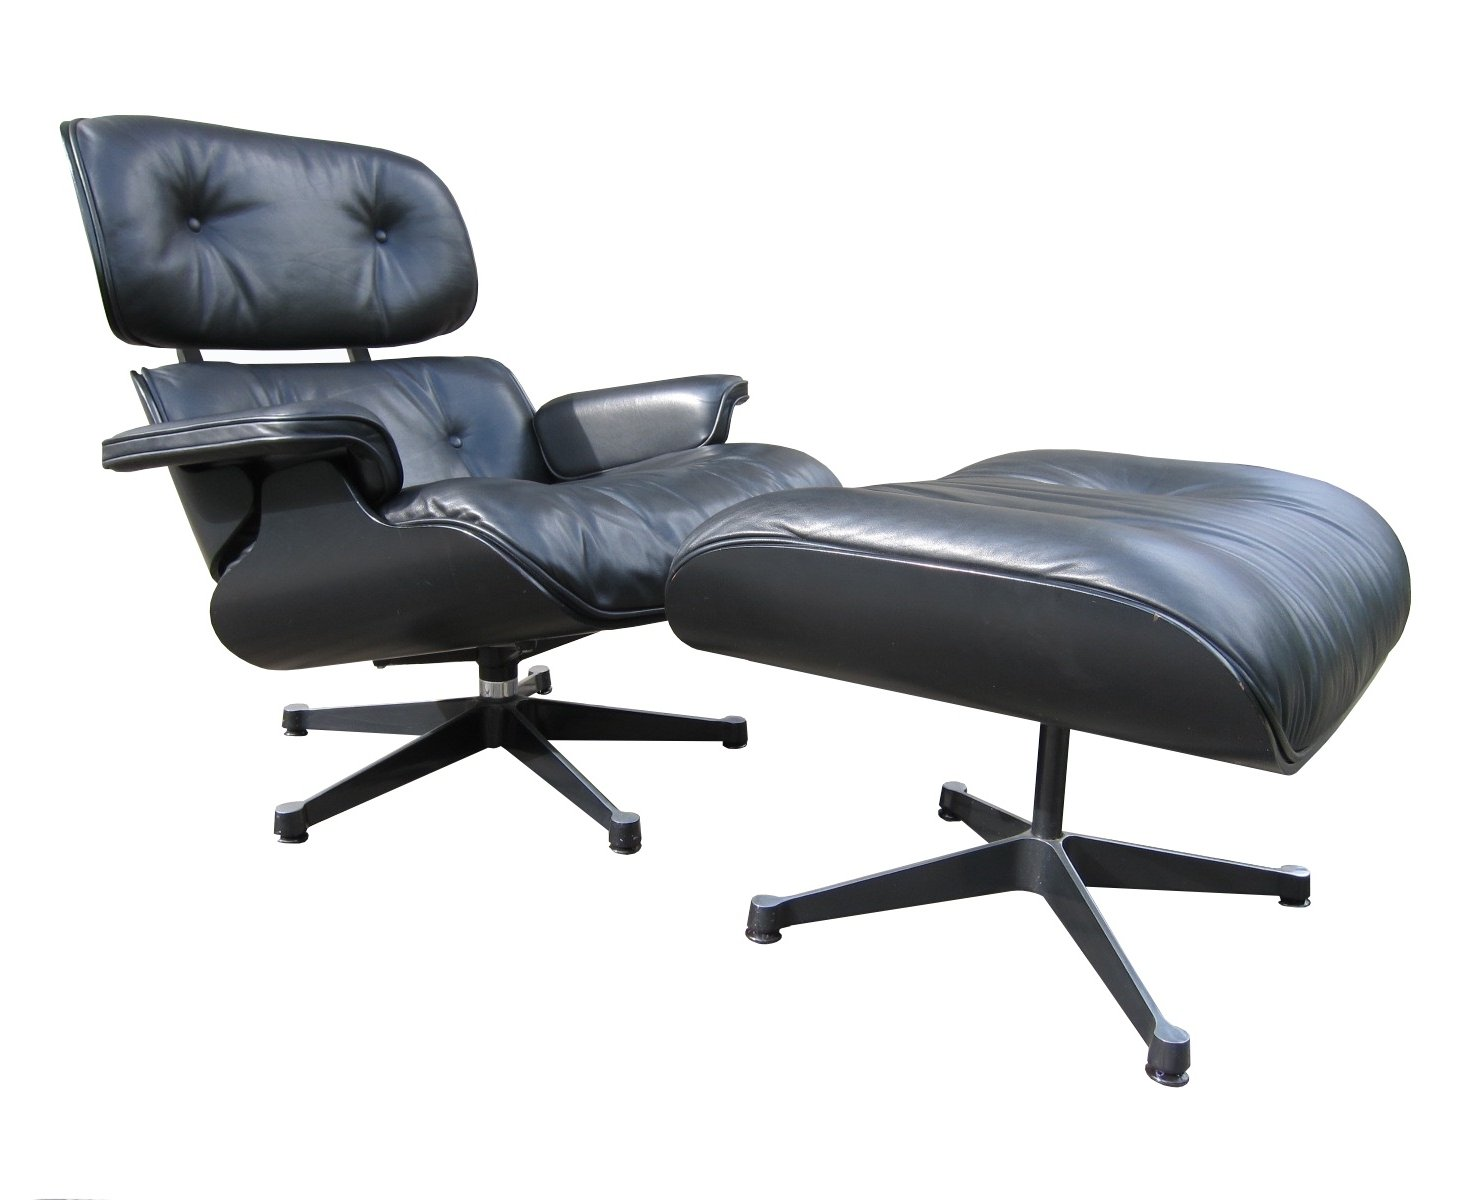 Vitra Eames Lounge Chair Black Eames Lounge Chair Ottoman Black On Black Herman Miller By Vitra